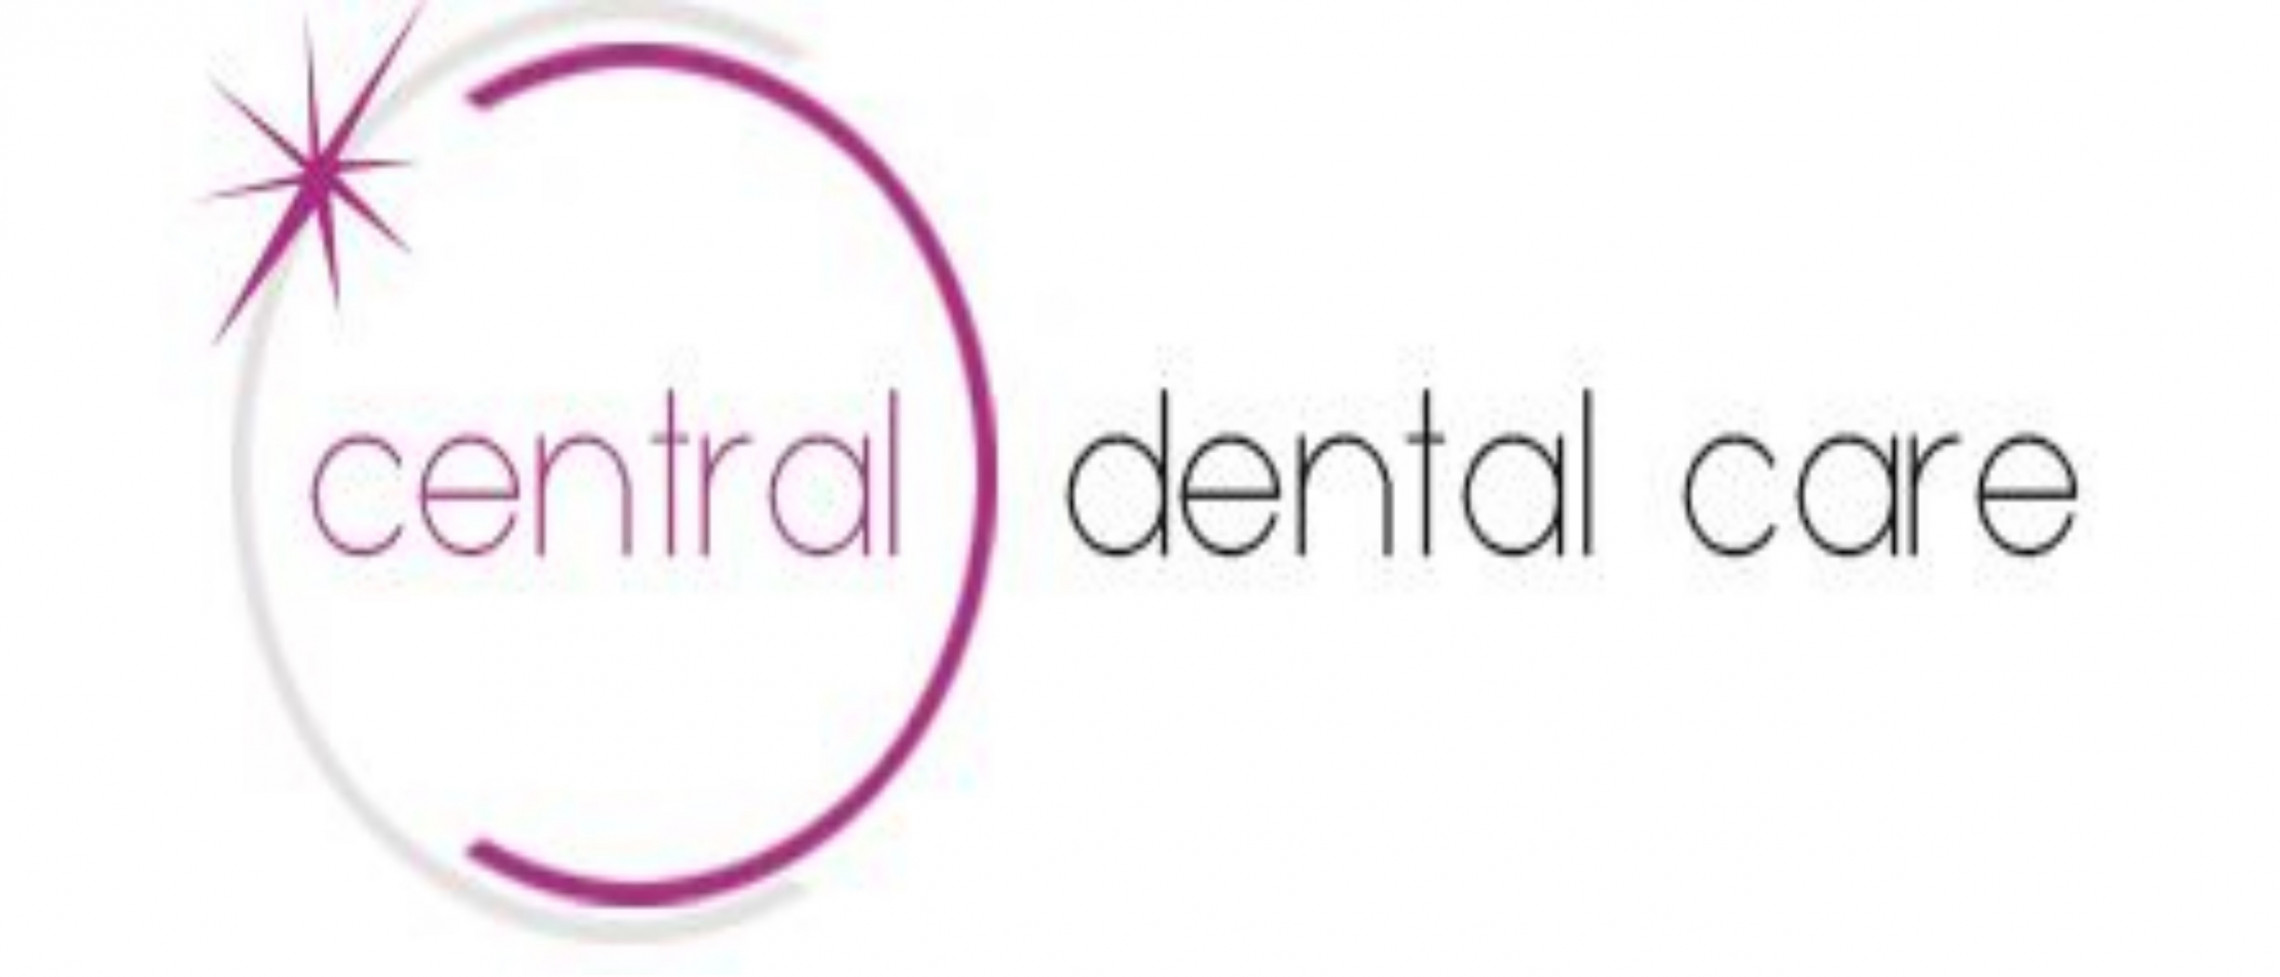 Central Dental Wembley